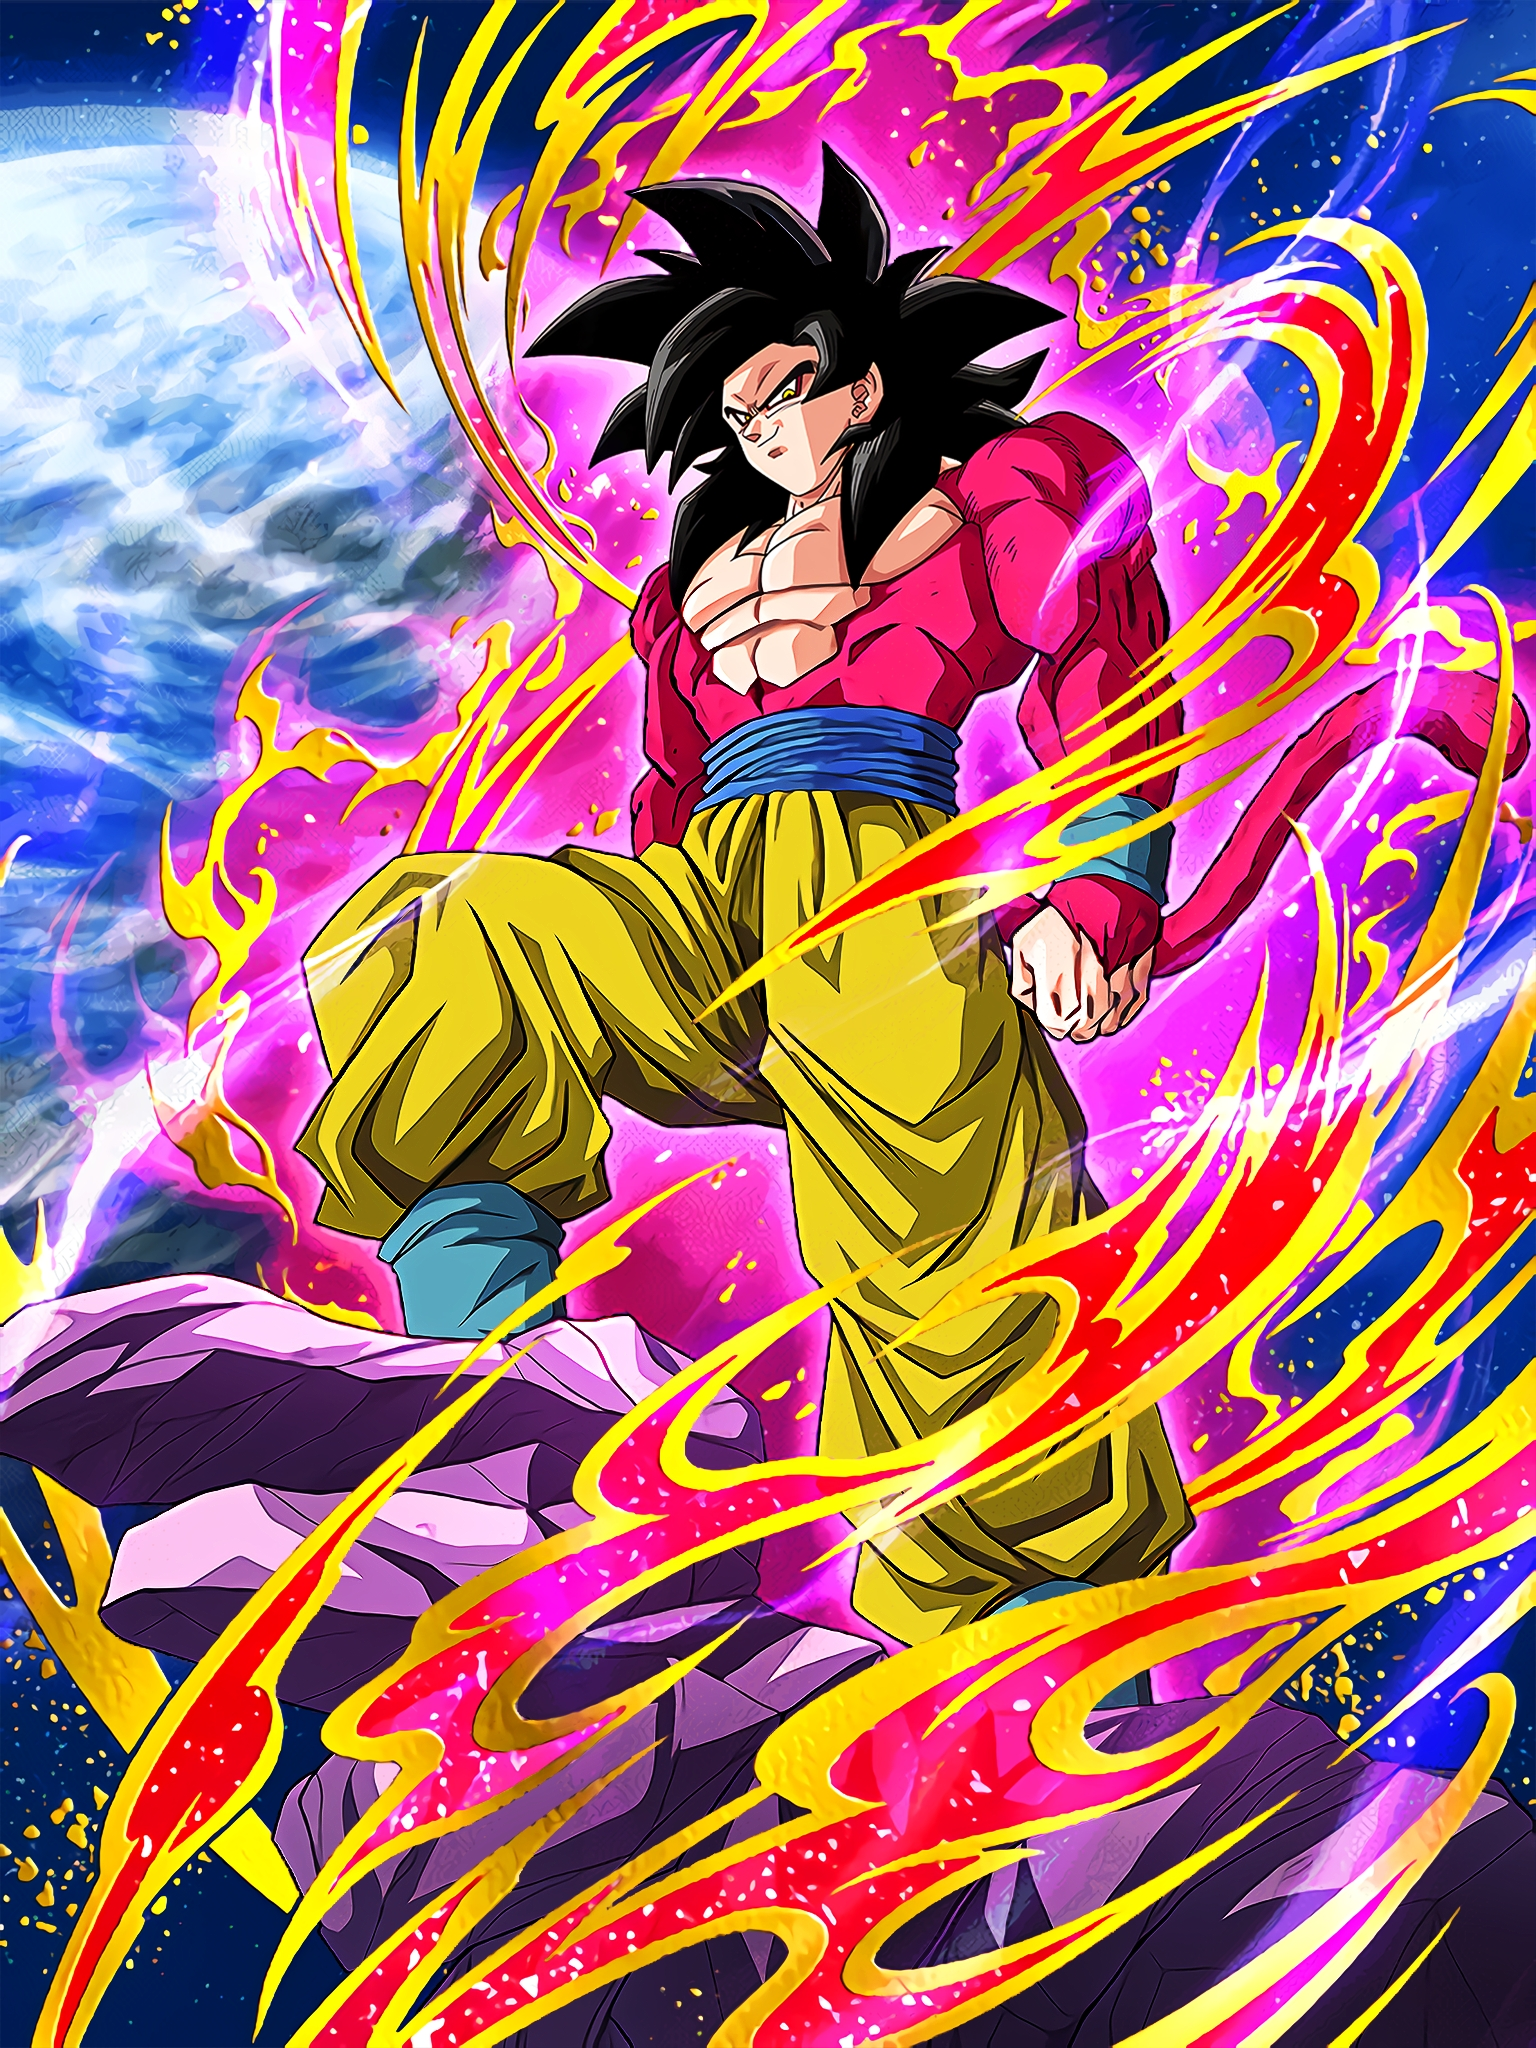 Scarlet Hero Super Saiyan 4 Goku Art (Dragon Ball Z Dokkan Battle) .jpg